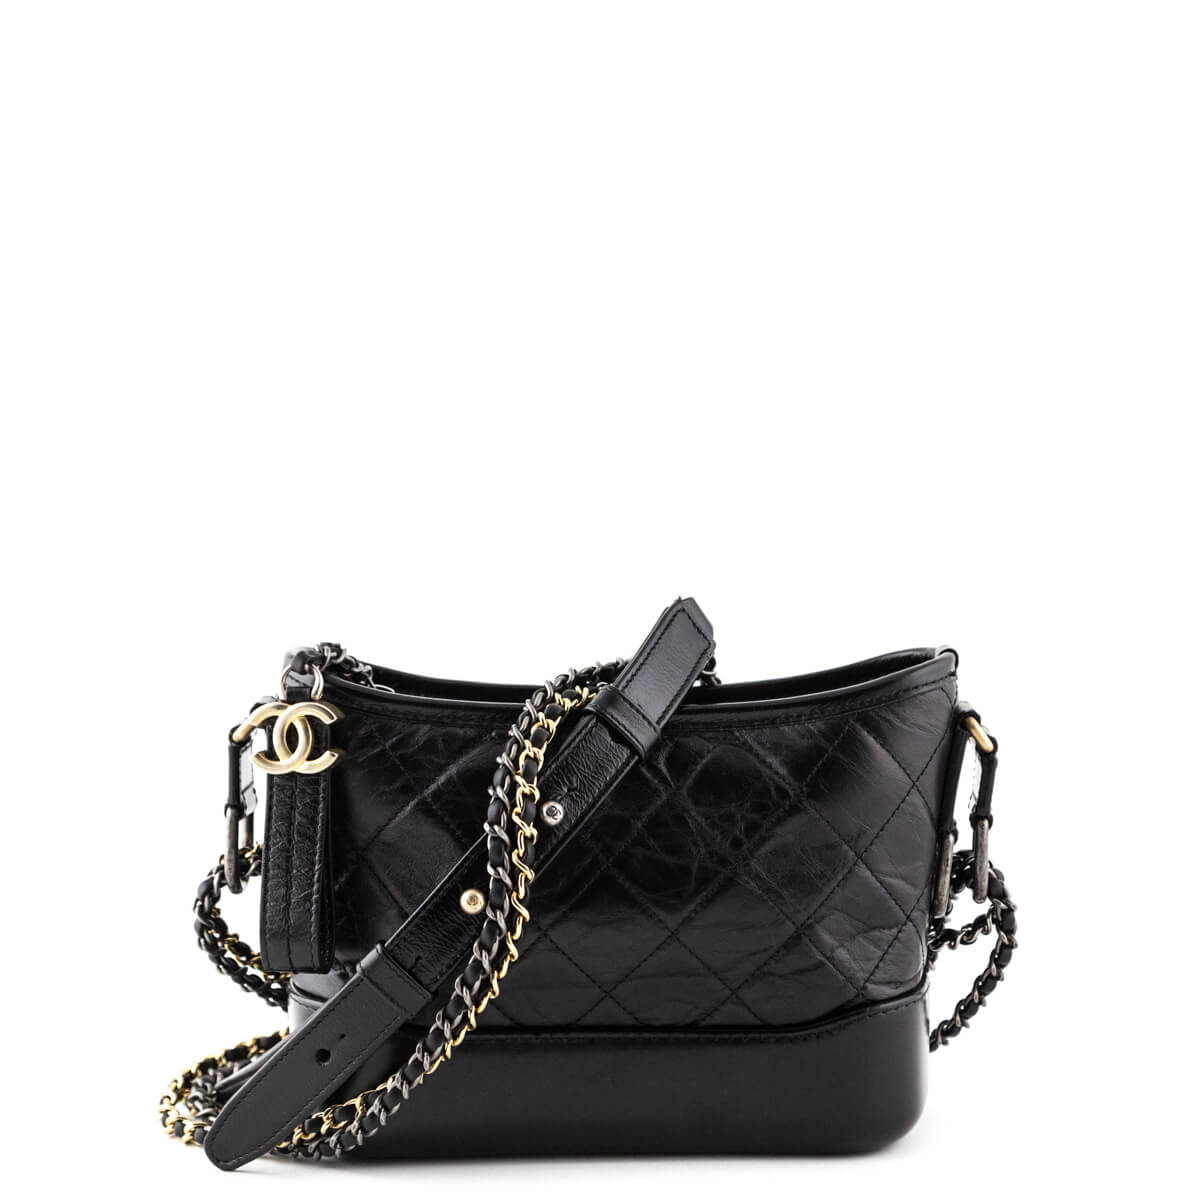 402d9312ddf1c4 Chanel Black Aged Calfskin Small Gabrielle Hobo Bag - LOVE that BAG -  Preowned Authentic Designer ...